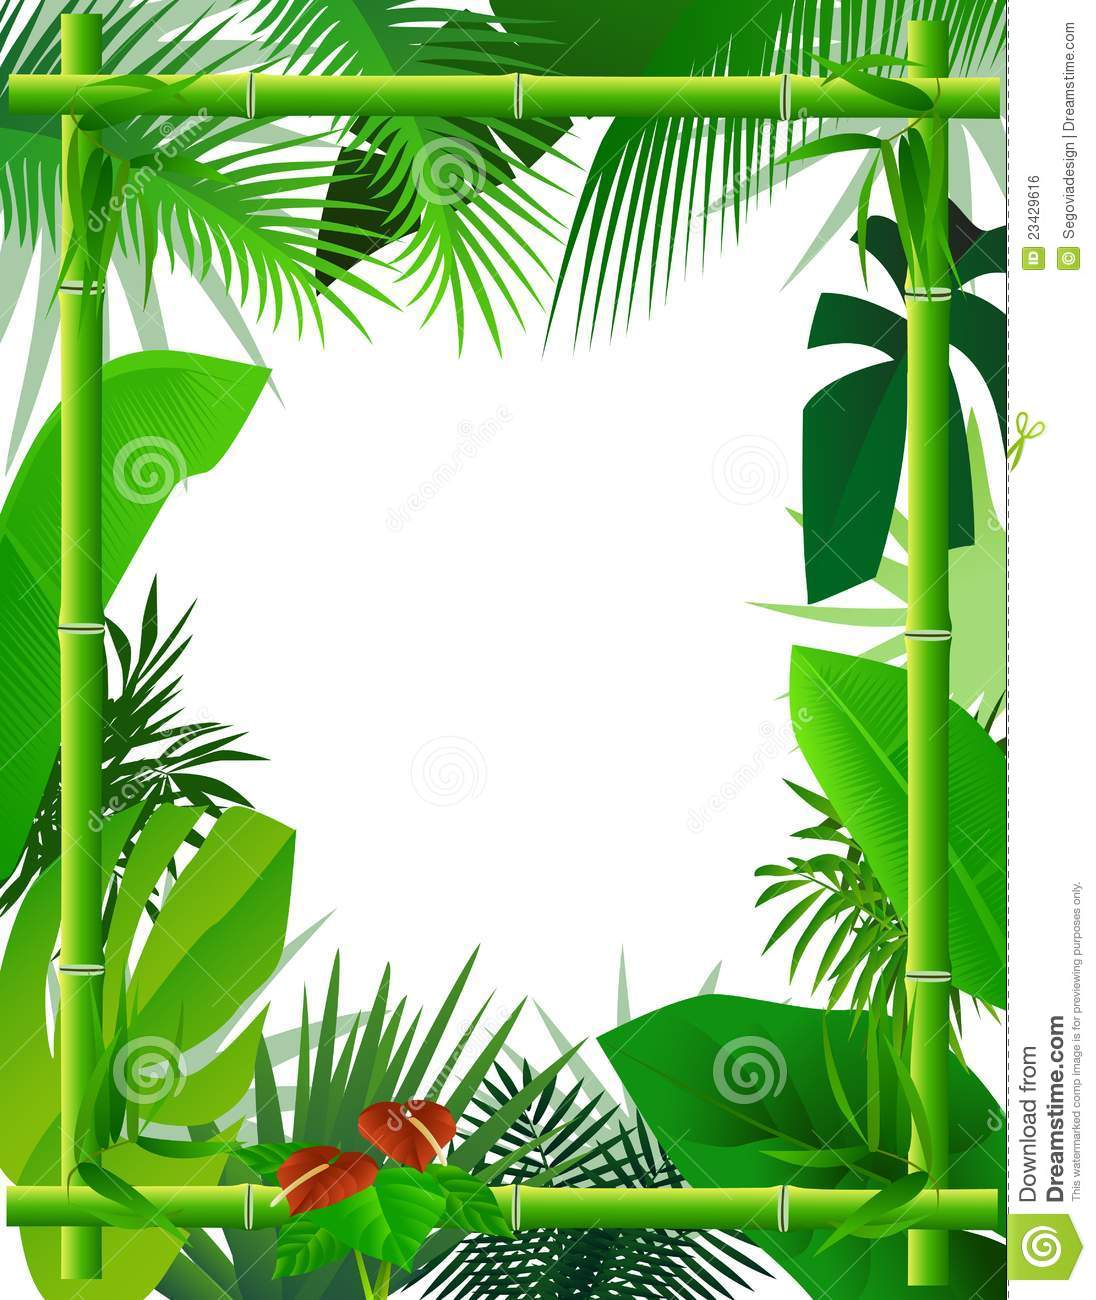 Tropical Background With Bamboo Frame Royalty Free Stock